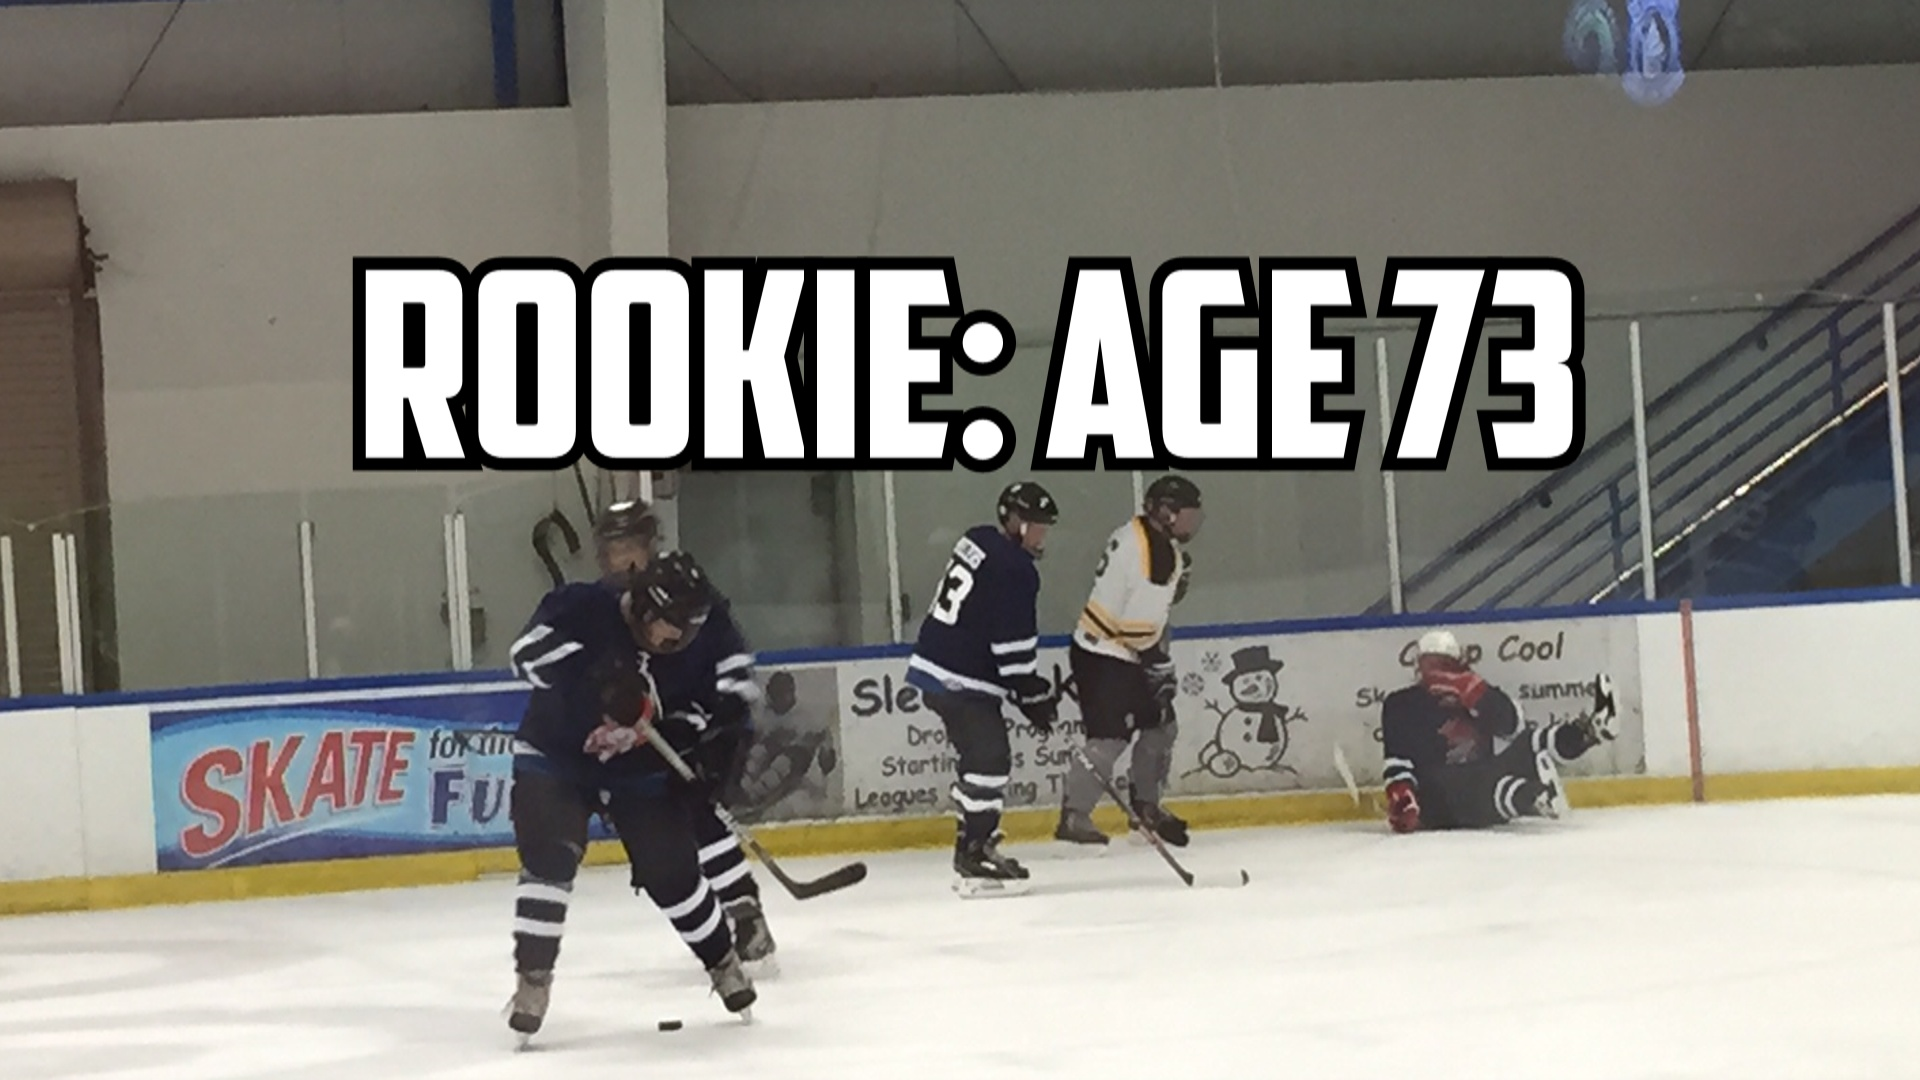 The 73 Year Old Hockey Rookie